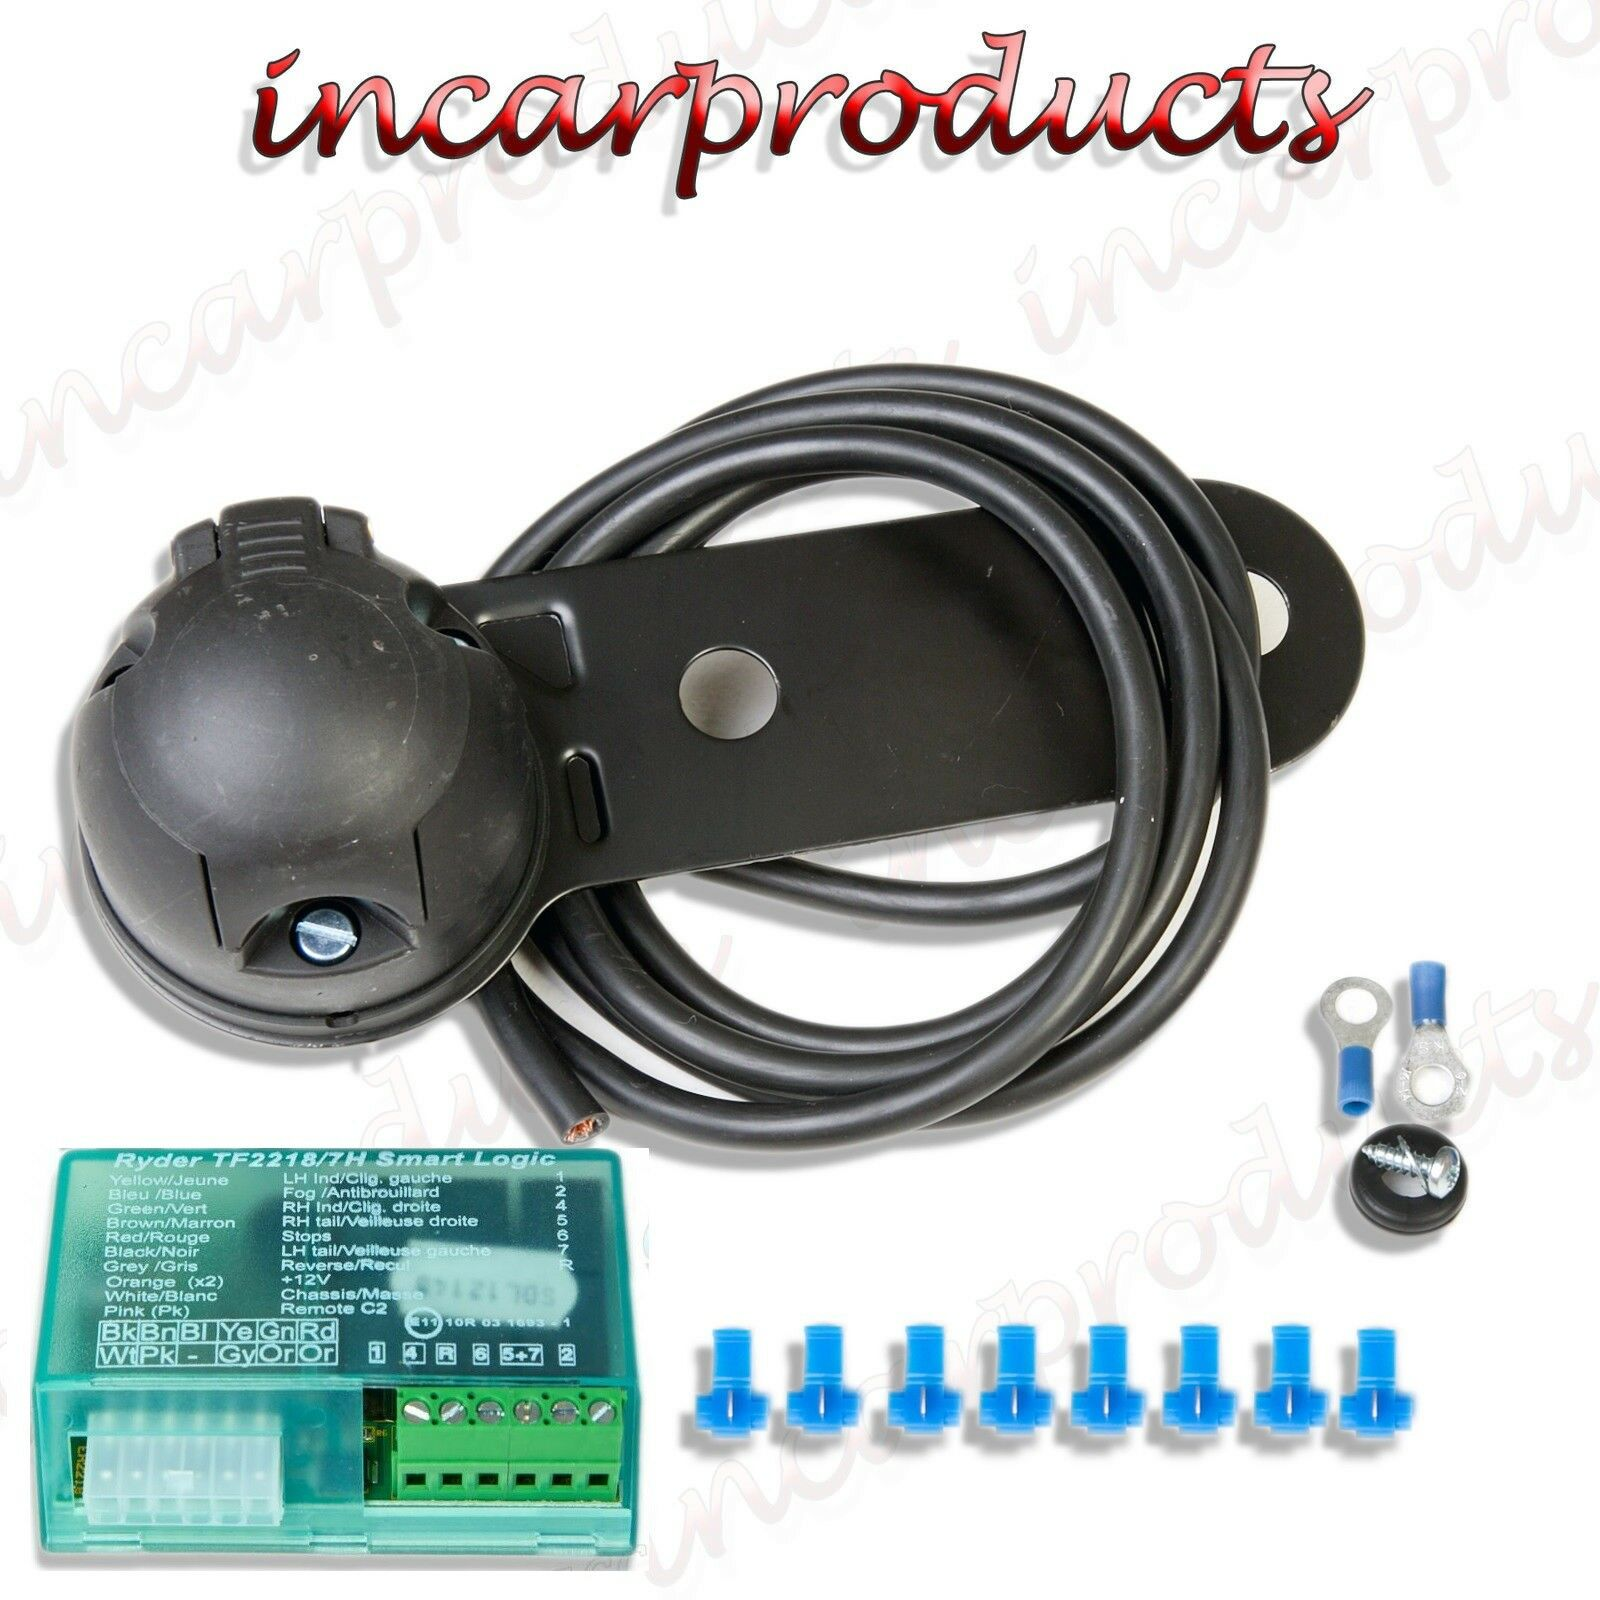 12n Full Single Towing Electrics Towbar Wiring Kit With Teb7as Trailer Socket Bypass Buzzer